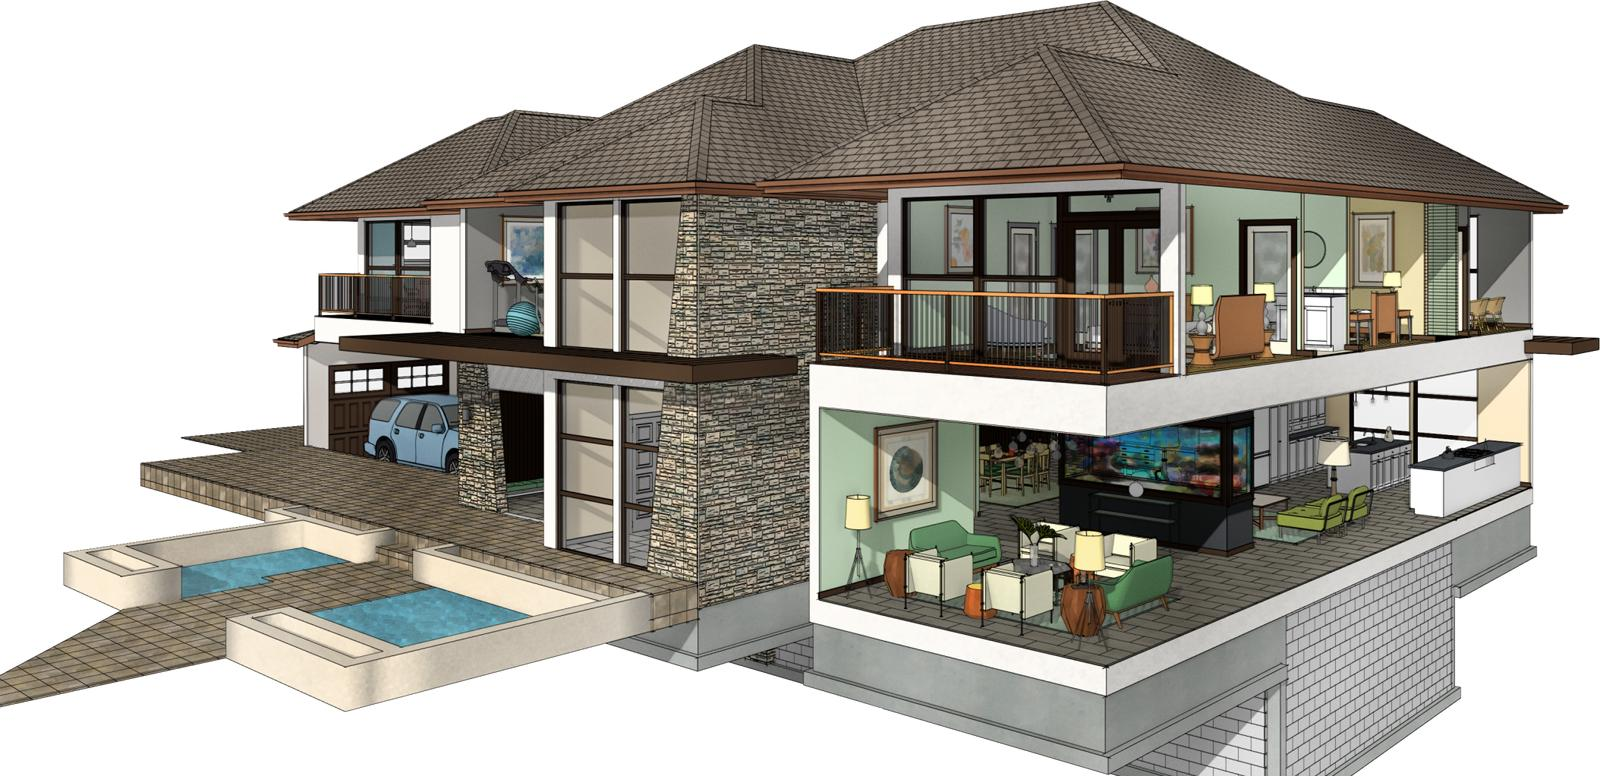 Home Design Software Market Share Size Growth Opportunity And Forecast Till 2026 Galus Australis